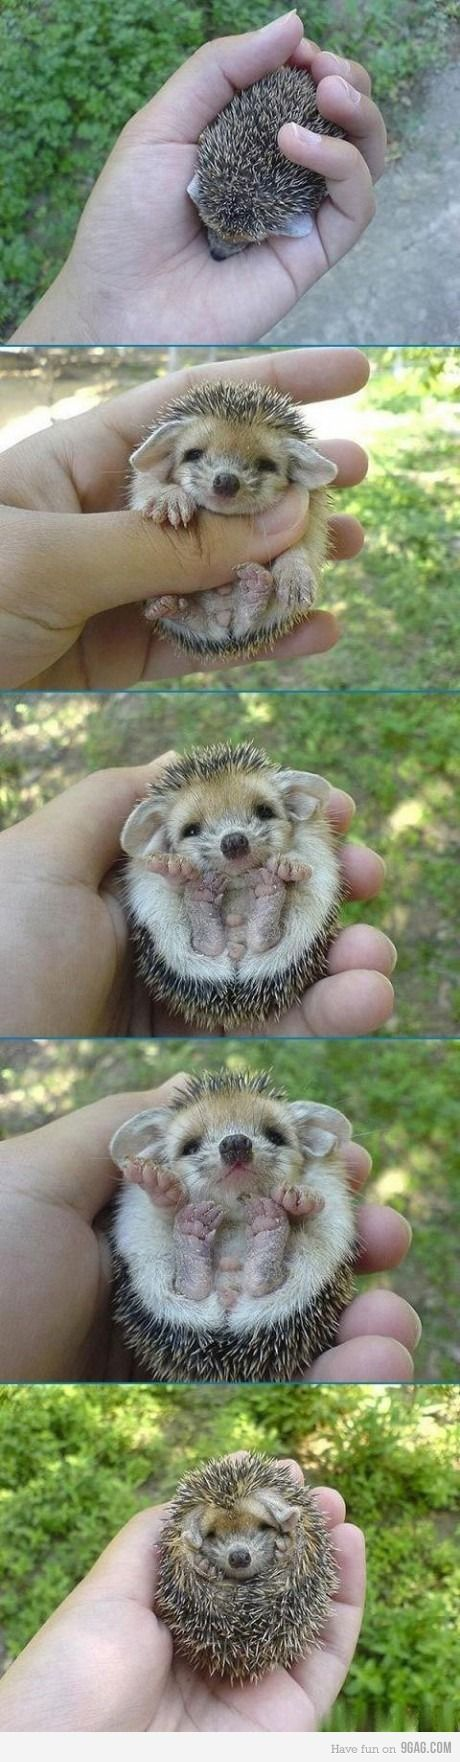 hedgehogs are such cuties!